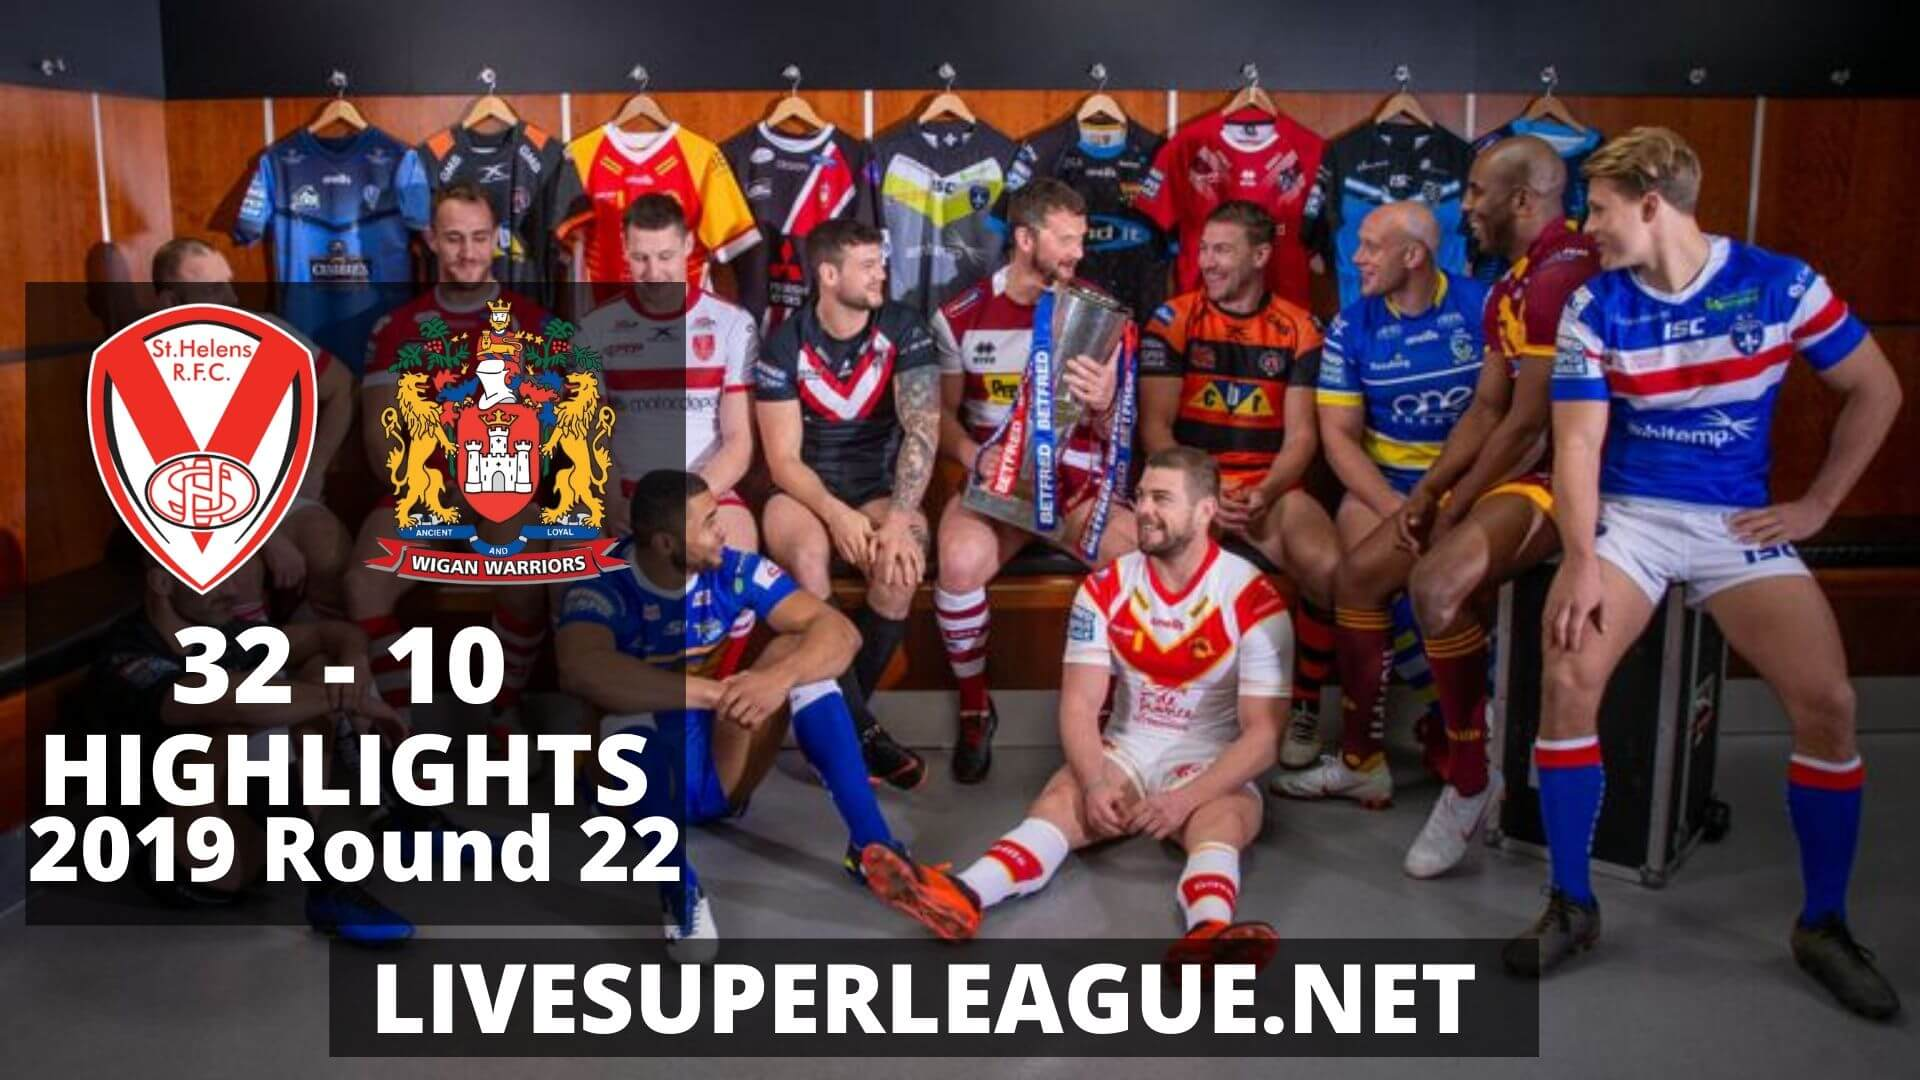 St Helens Vs Wigan Warriors Highlights 2019 Round 22